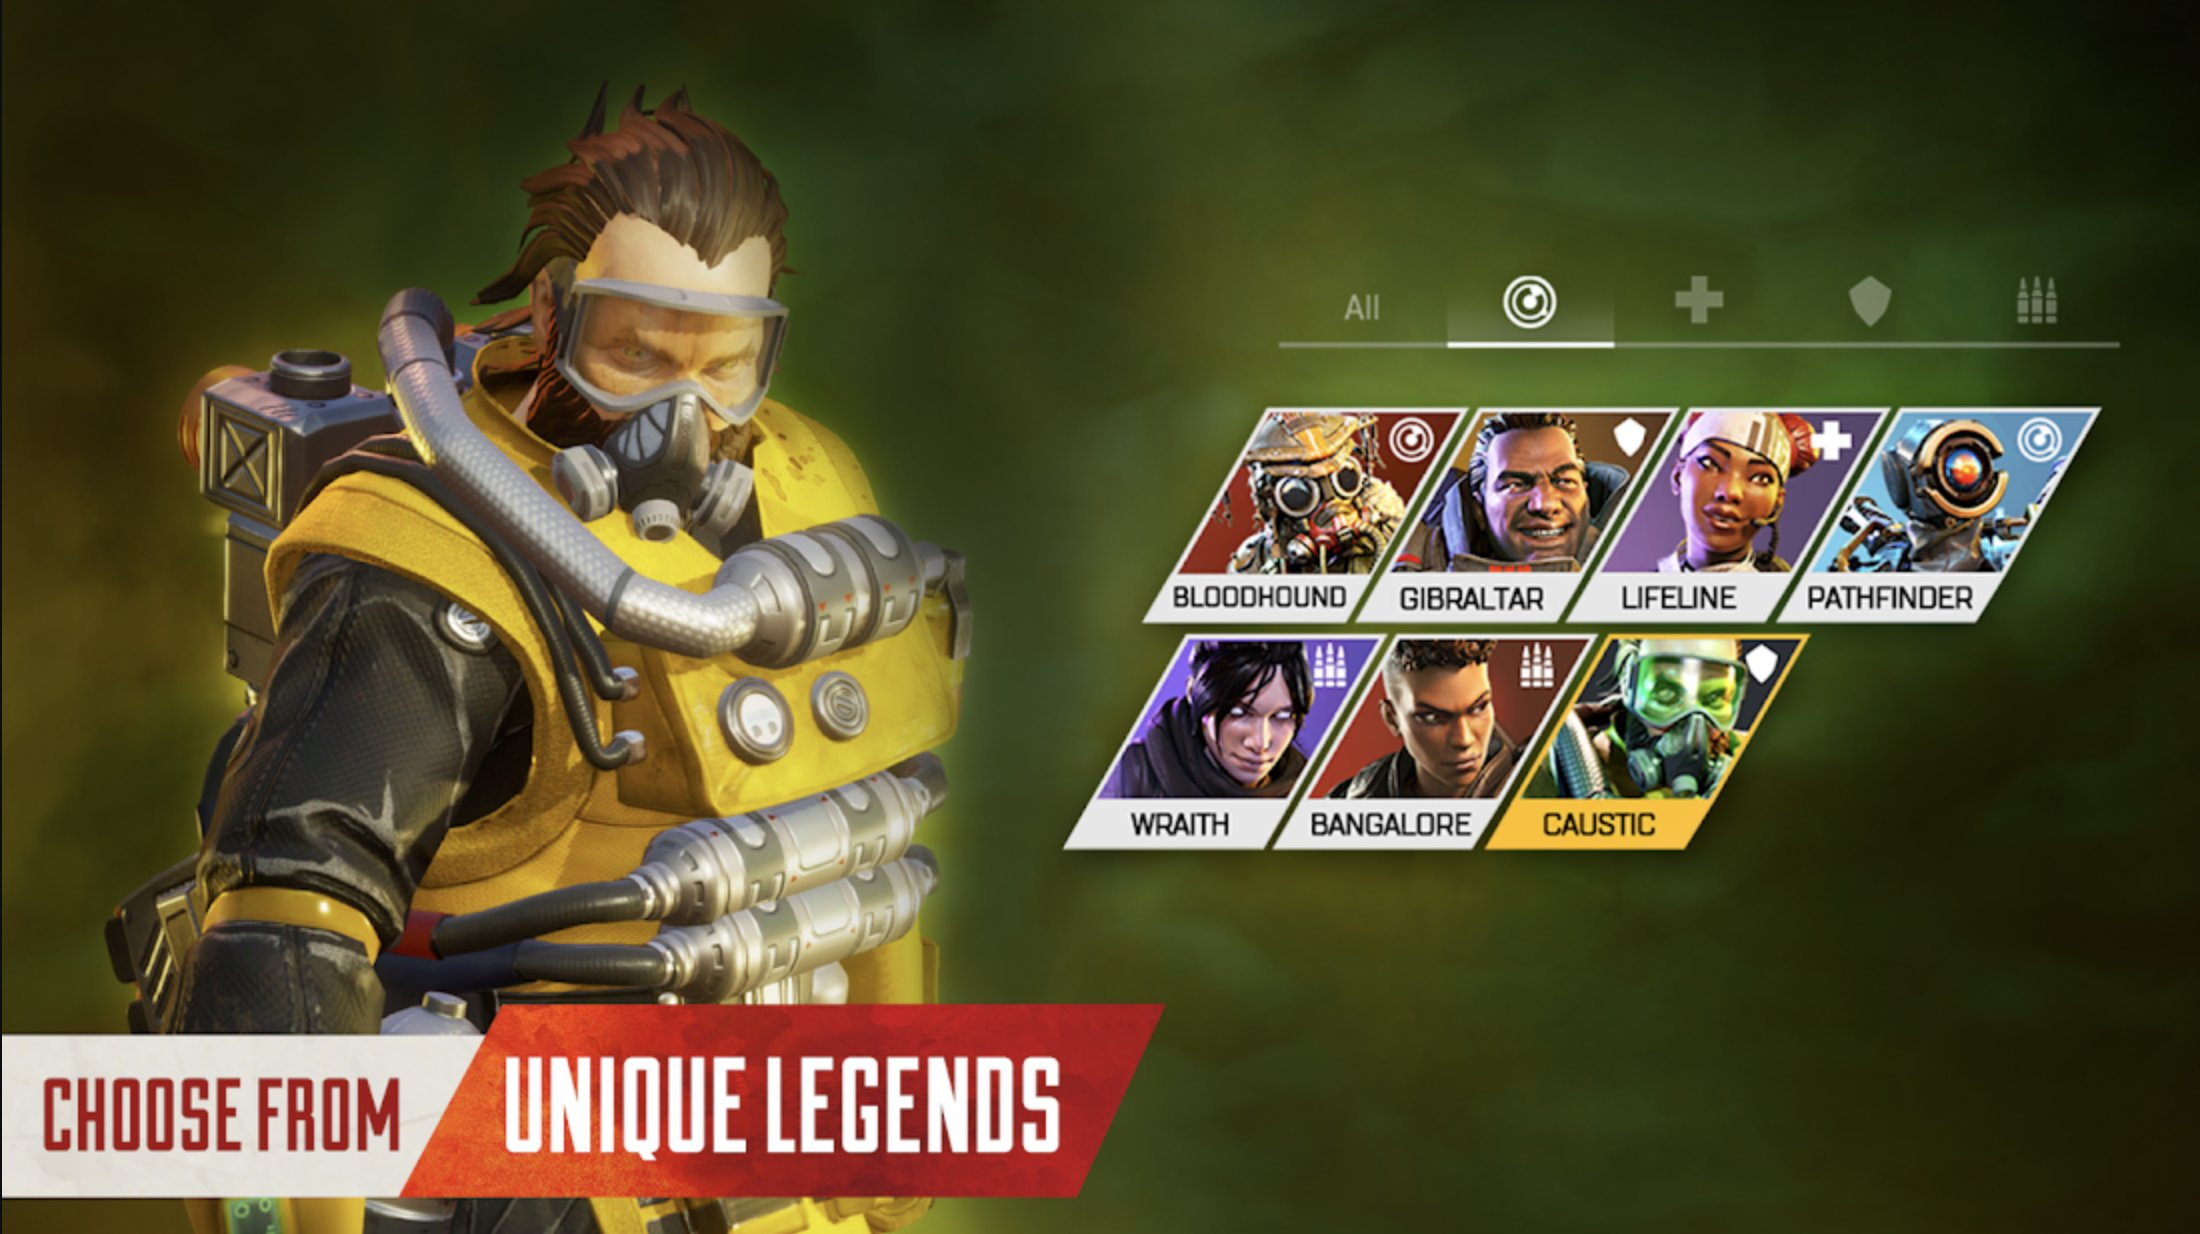 【APEX】Google Playで「Apex Legends Mobile」のページが公開された模様!!